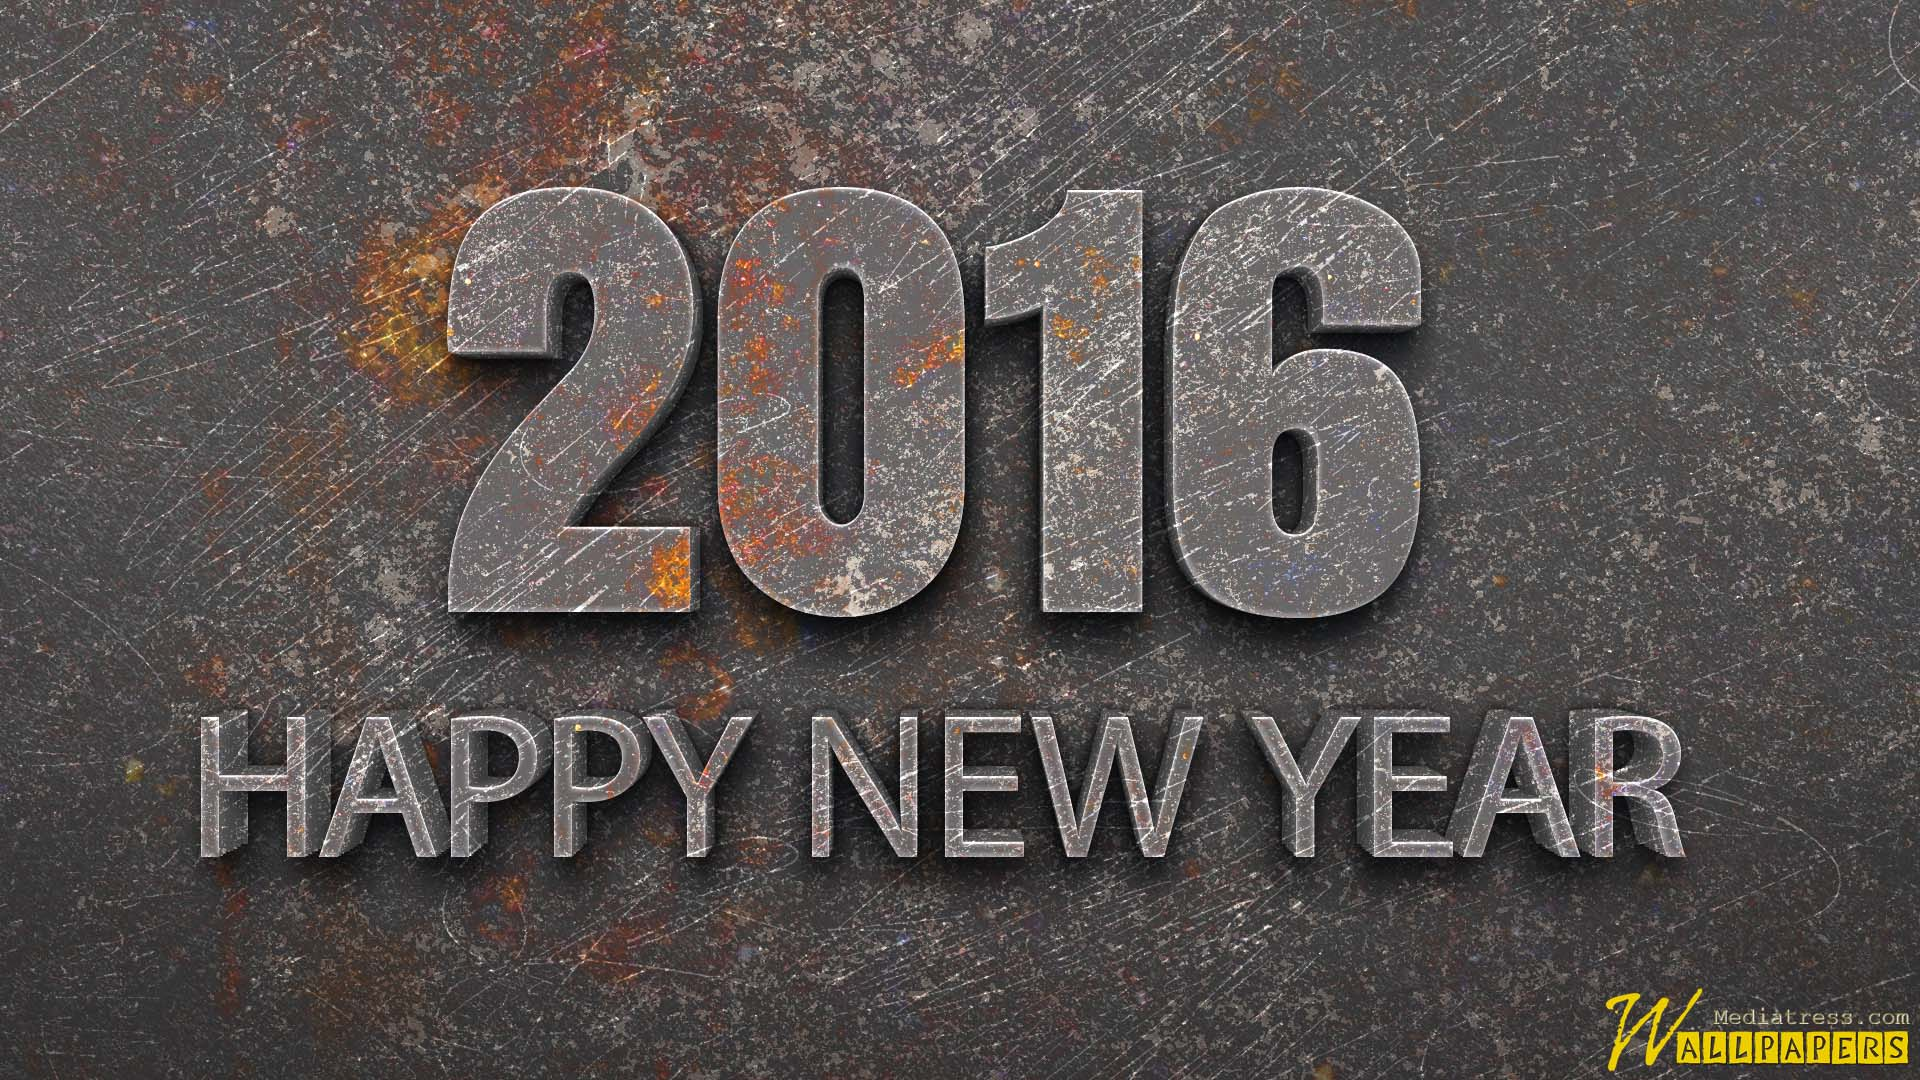 3D Iron New Year 2016 Wallpapers Free For Windo Wallpapers